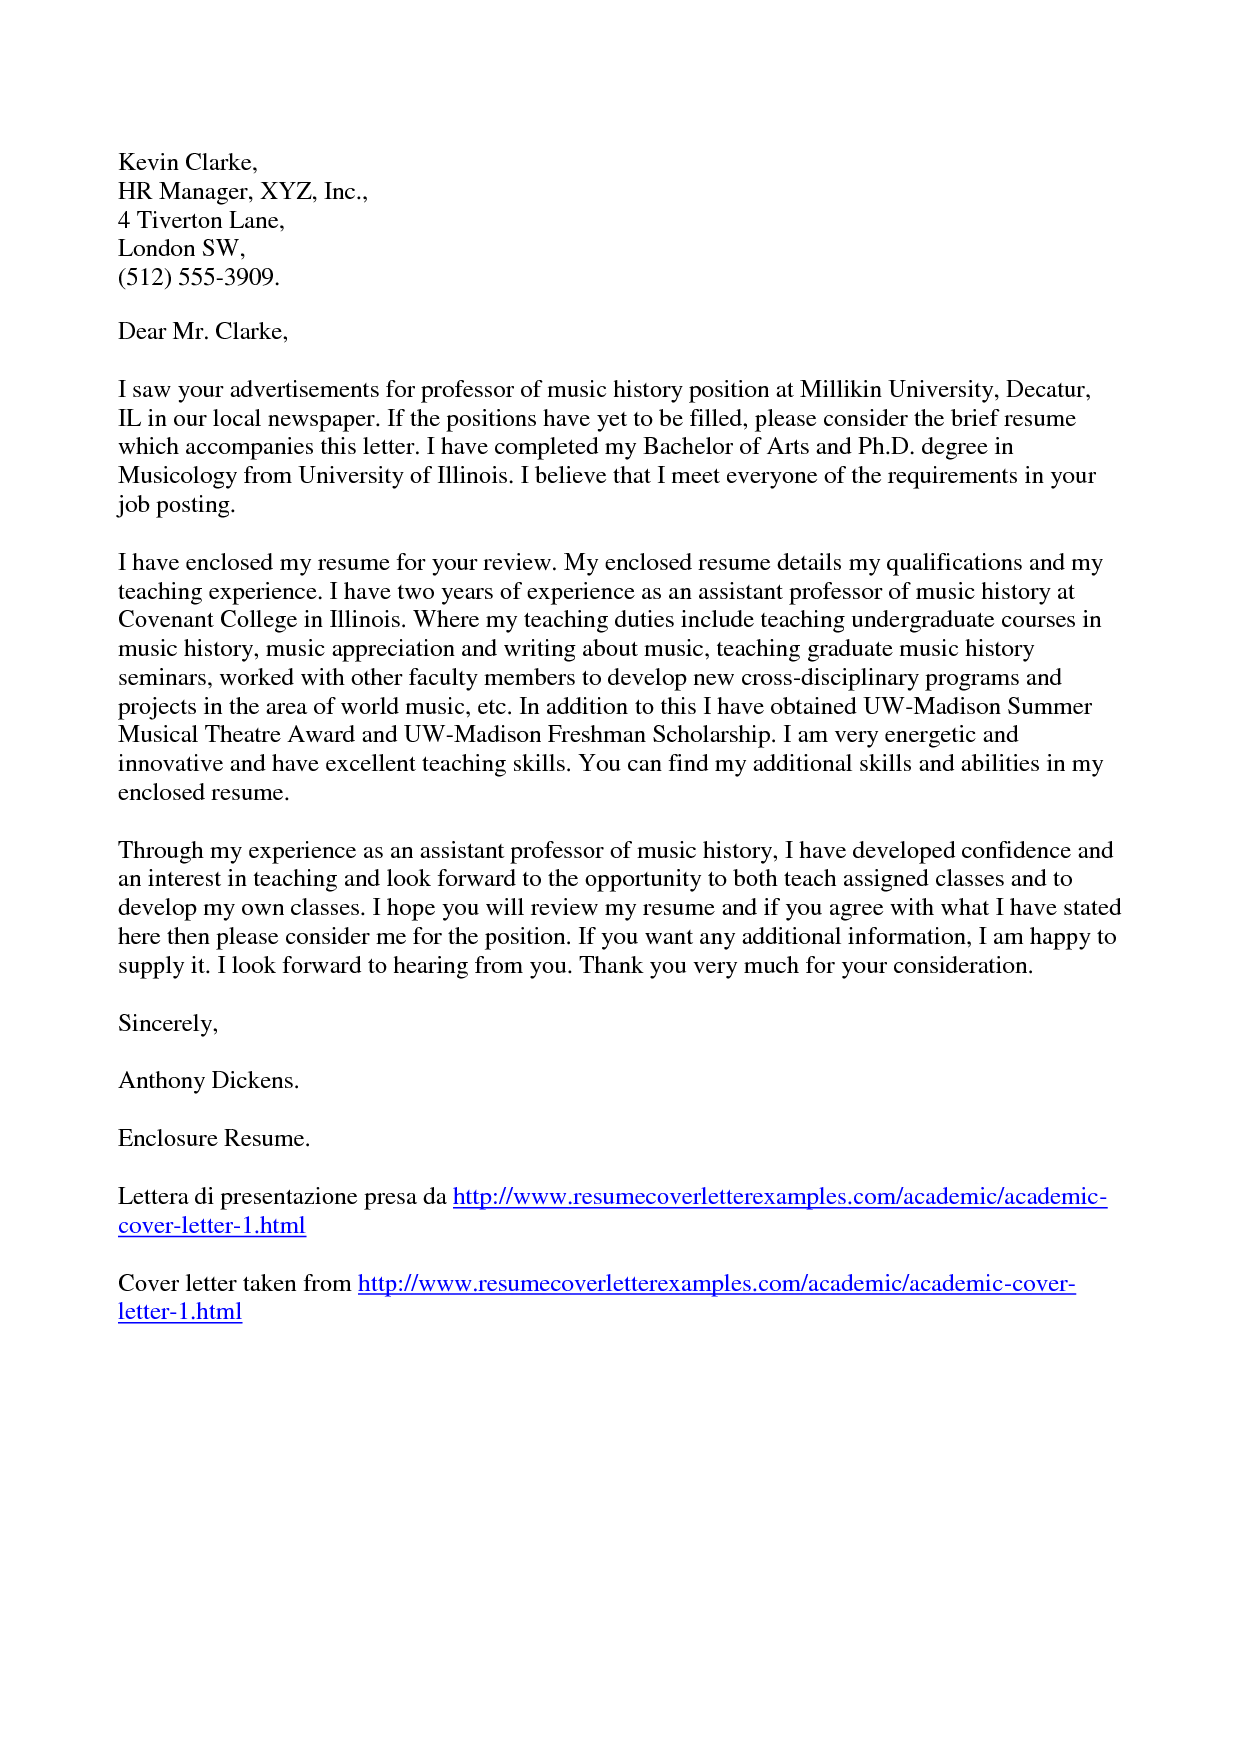 Vitae Academic Cover Letter Template Word Letters For Applications